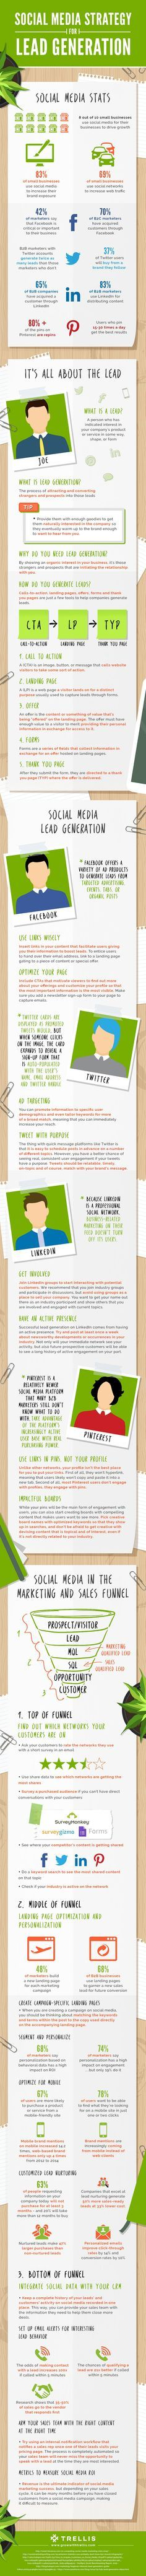 Social Media Strategy for Lead Generation [Infographic] AND Take this Free Full Lenght Video Training on HOW to Start an Online Business The complete toolbox that gives you everything you need to start a profitable online business! Inbound Marketing, Marketing Trends, Marketing En Internet, Marketing Services, Facebook Marketing, Marketing Tools, Content Marketing, Social Media Marketing, Marketing Technology